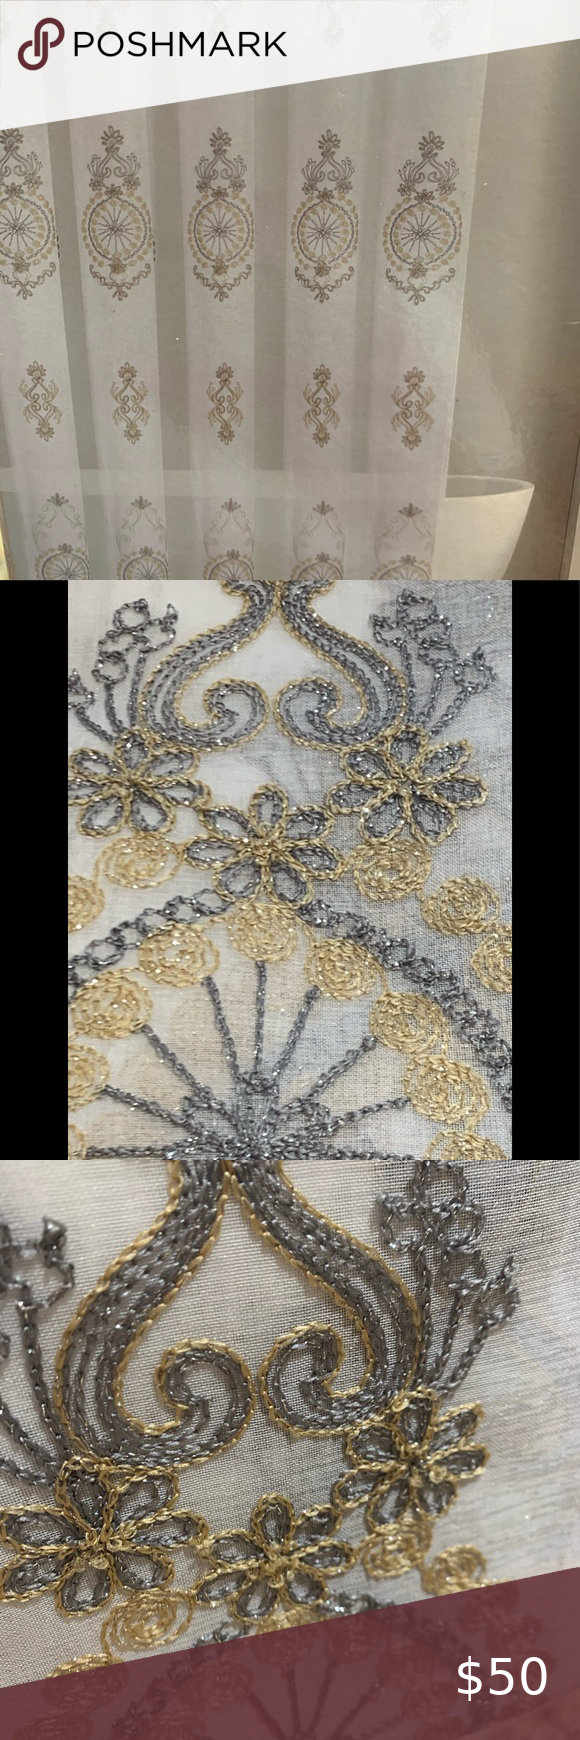 Gold and silver embroidered shower curtain new in 2020 ...